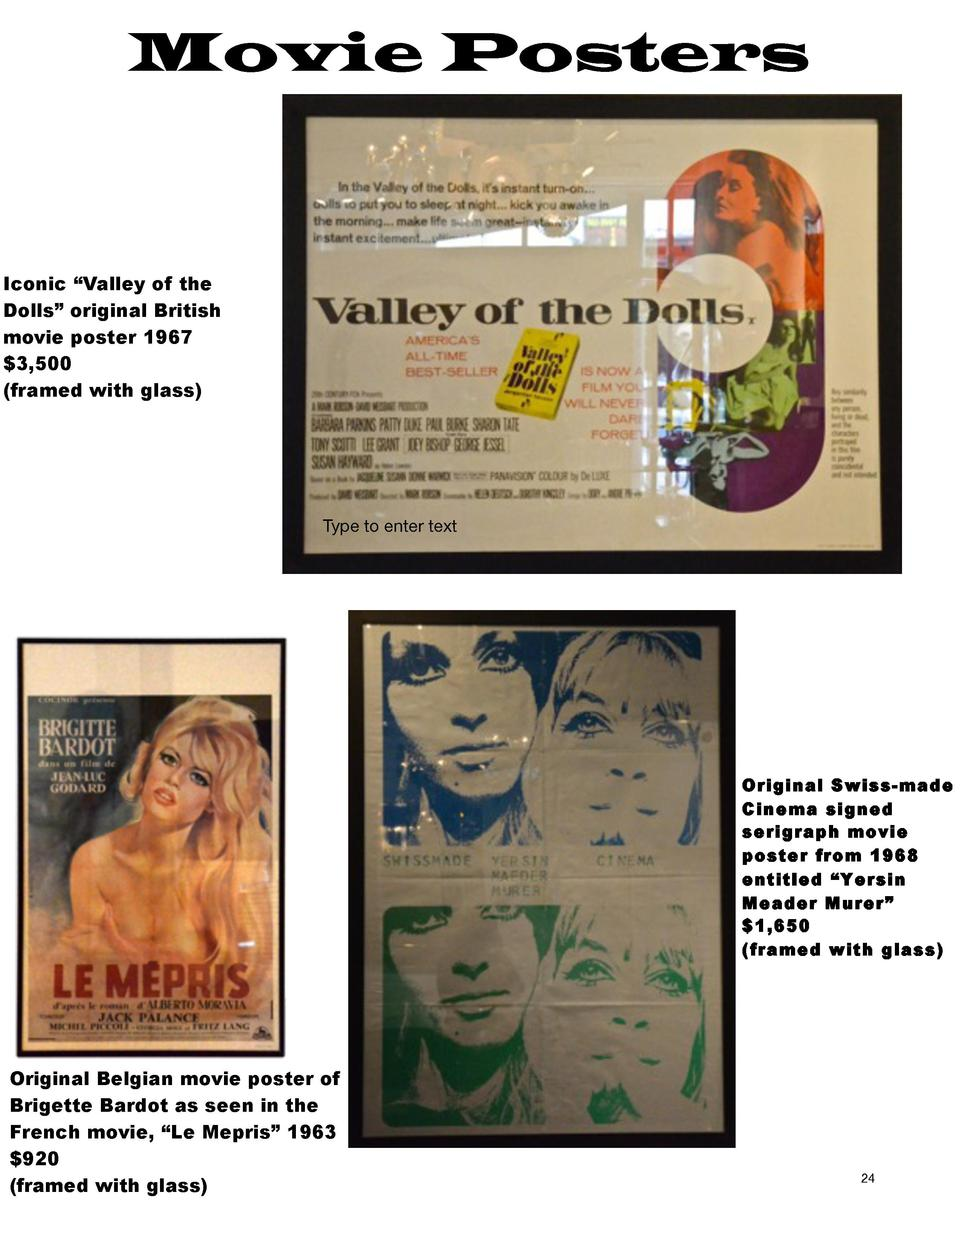 Movie Posters  Iconic    Valley of the Dolls    original British movie poster 1967  3,500  framed with glass   Type to ent...